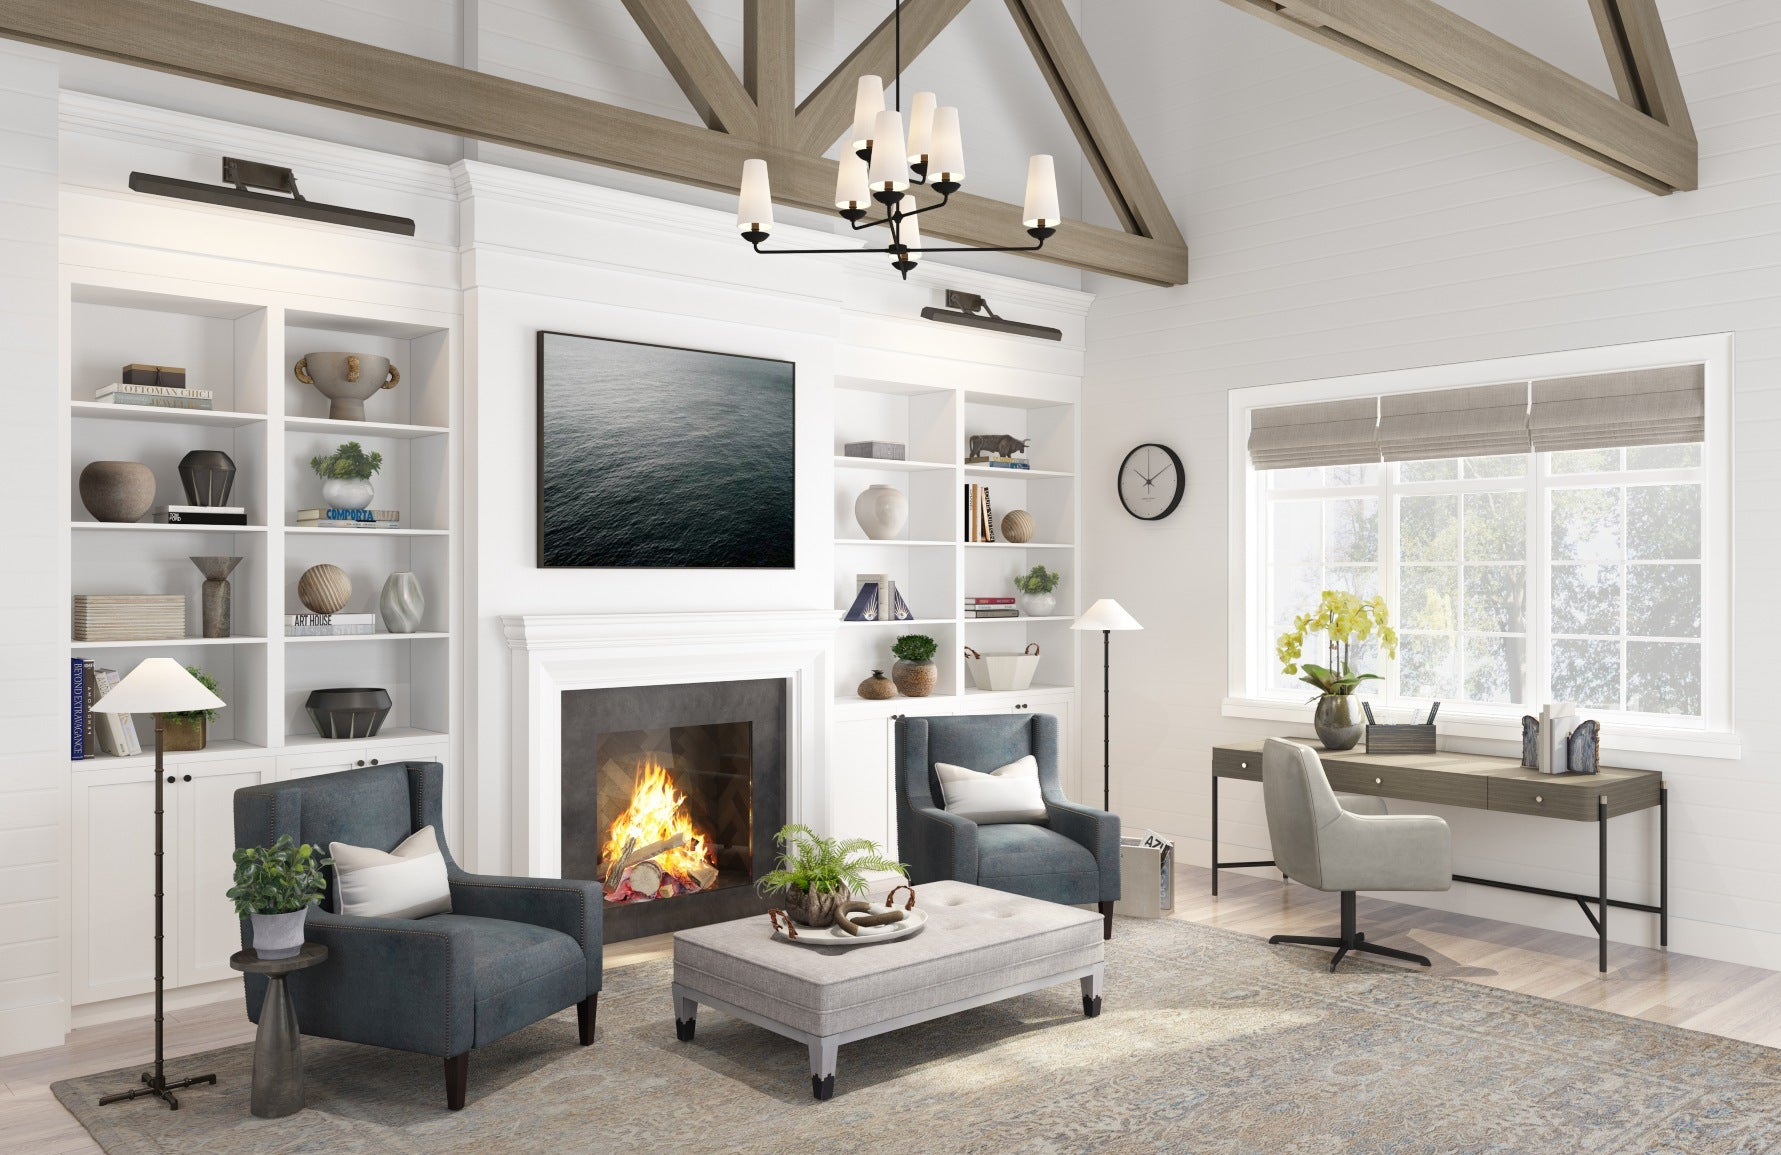 LuxDeco Summer House   Modern Rustic Office    Shop rustic interiors at LuxDeco.com